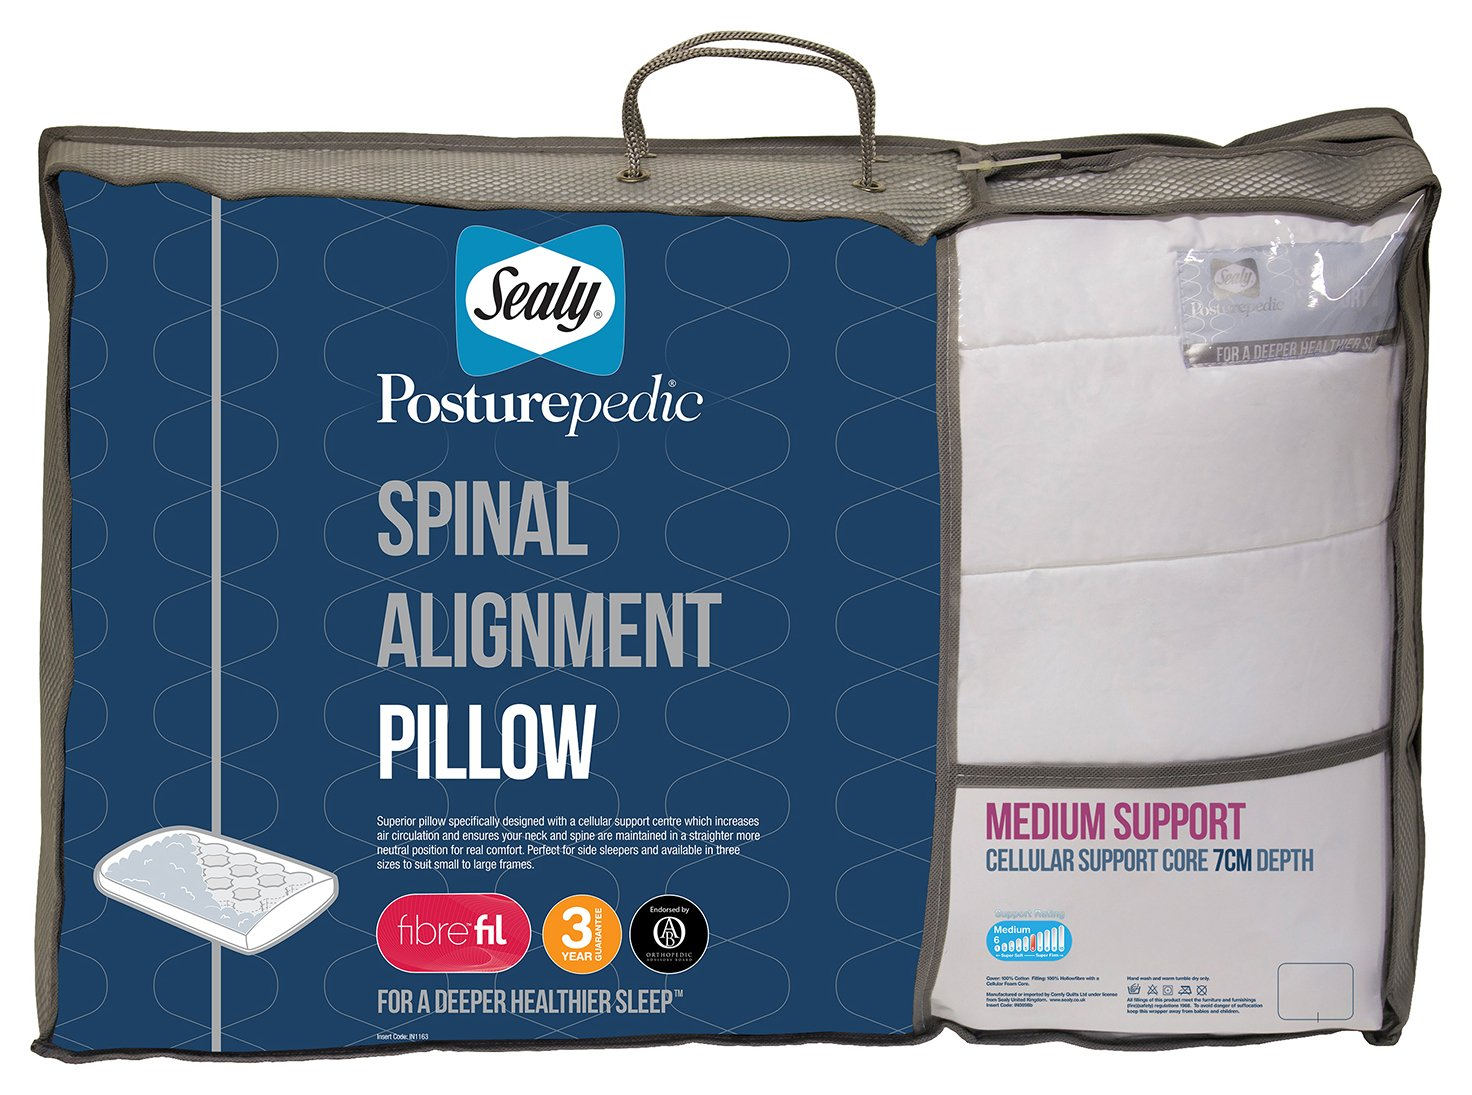 sealy  posturepedic spinal alignment pillow  7cm